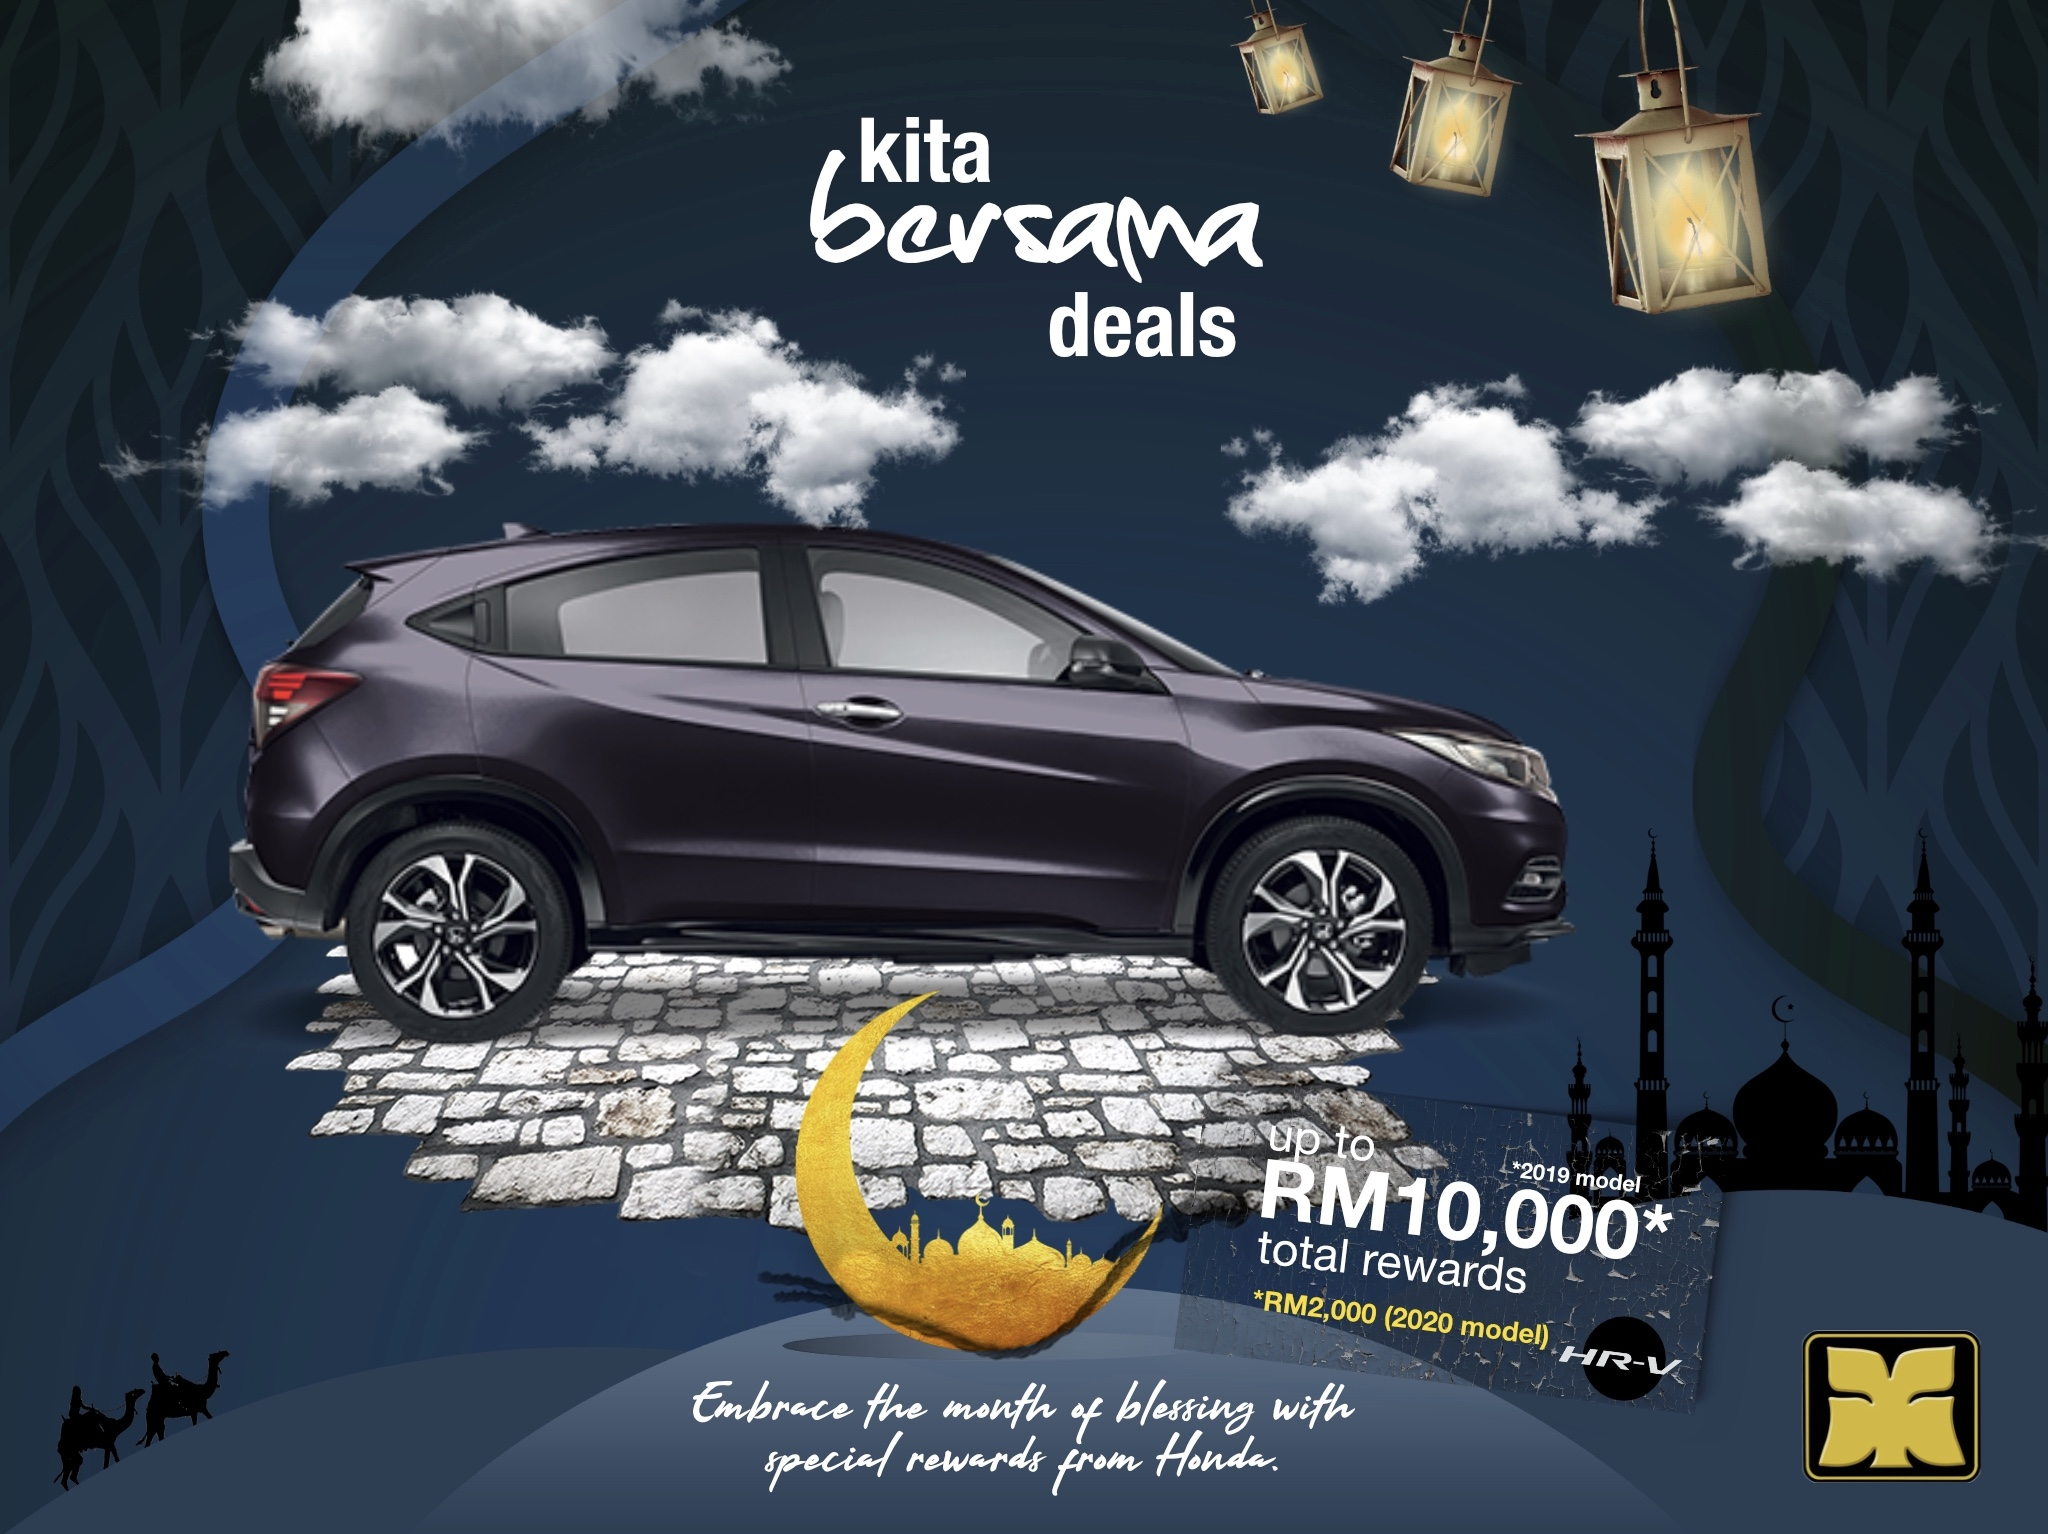 Month of Blessing Kita Bersama Deals Yong Ming Honda HR-V